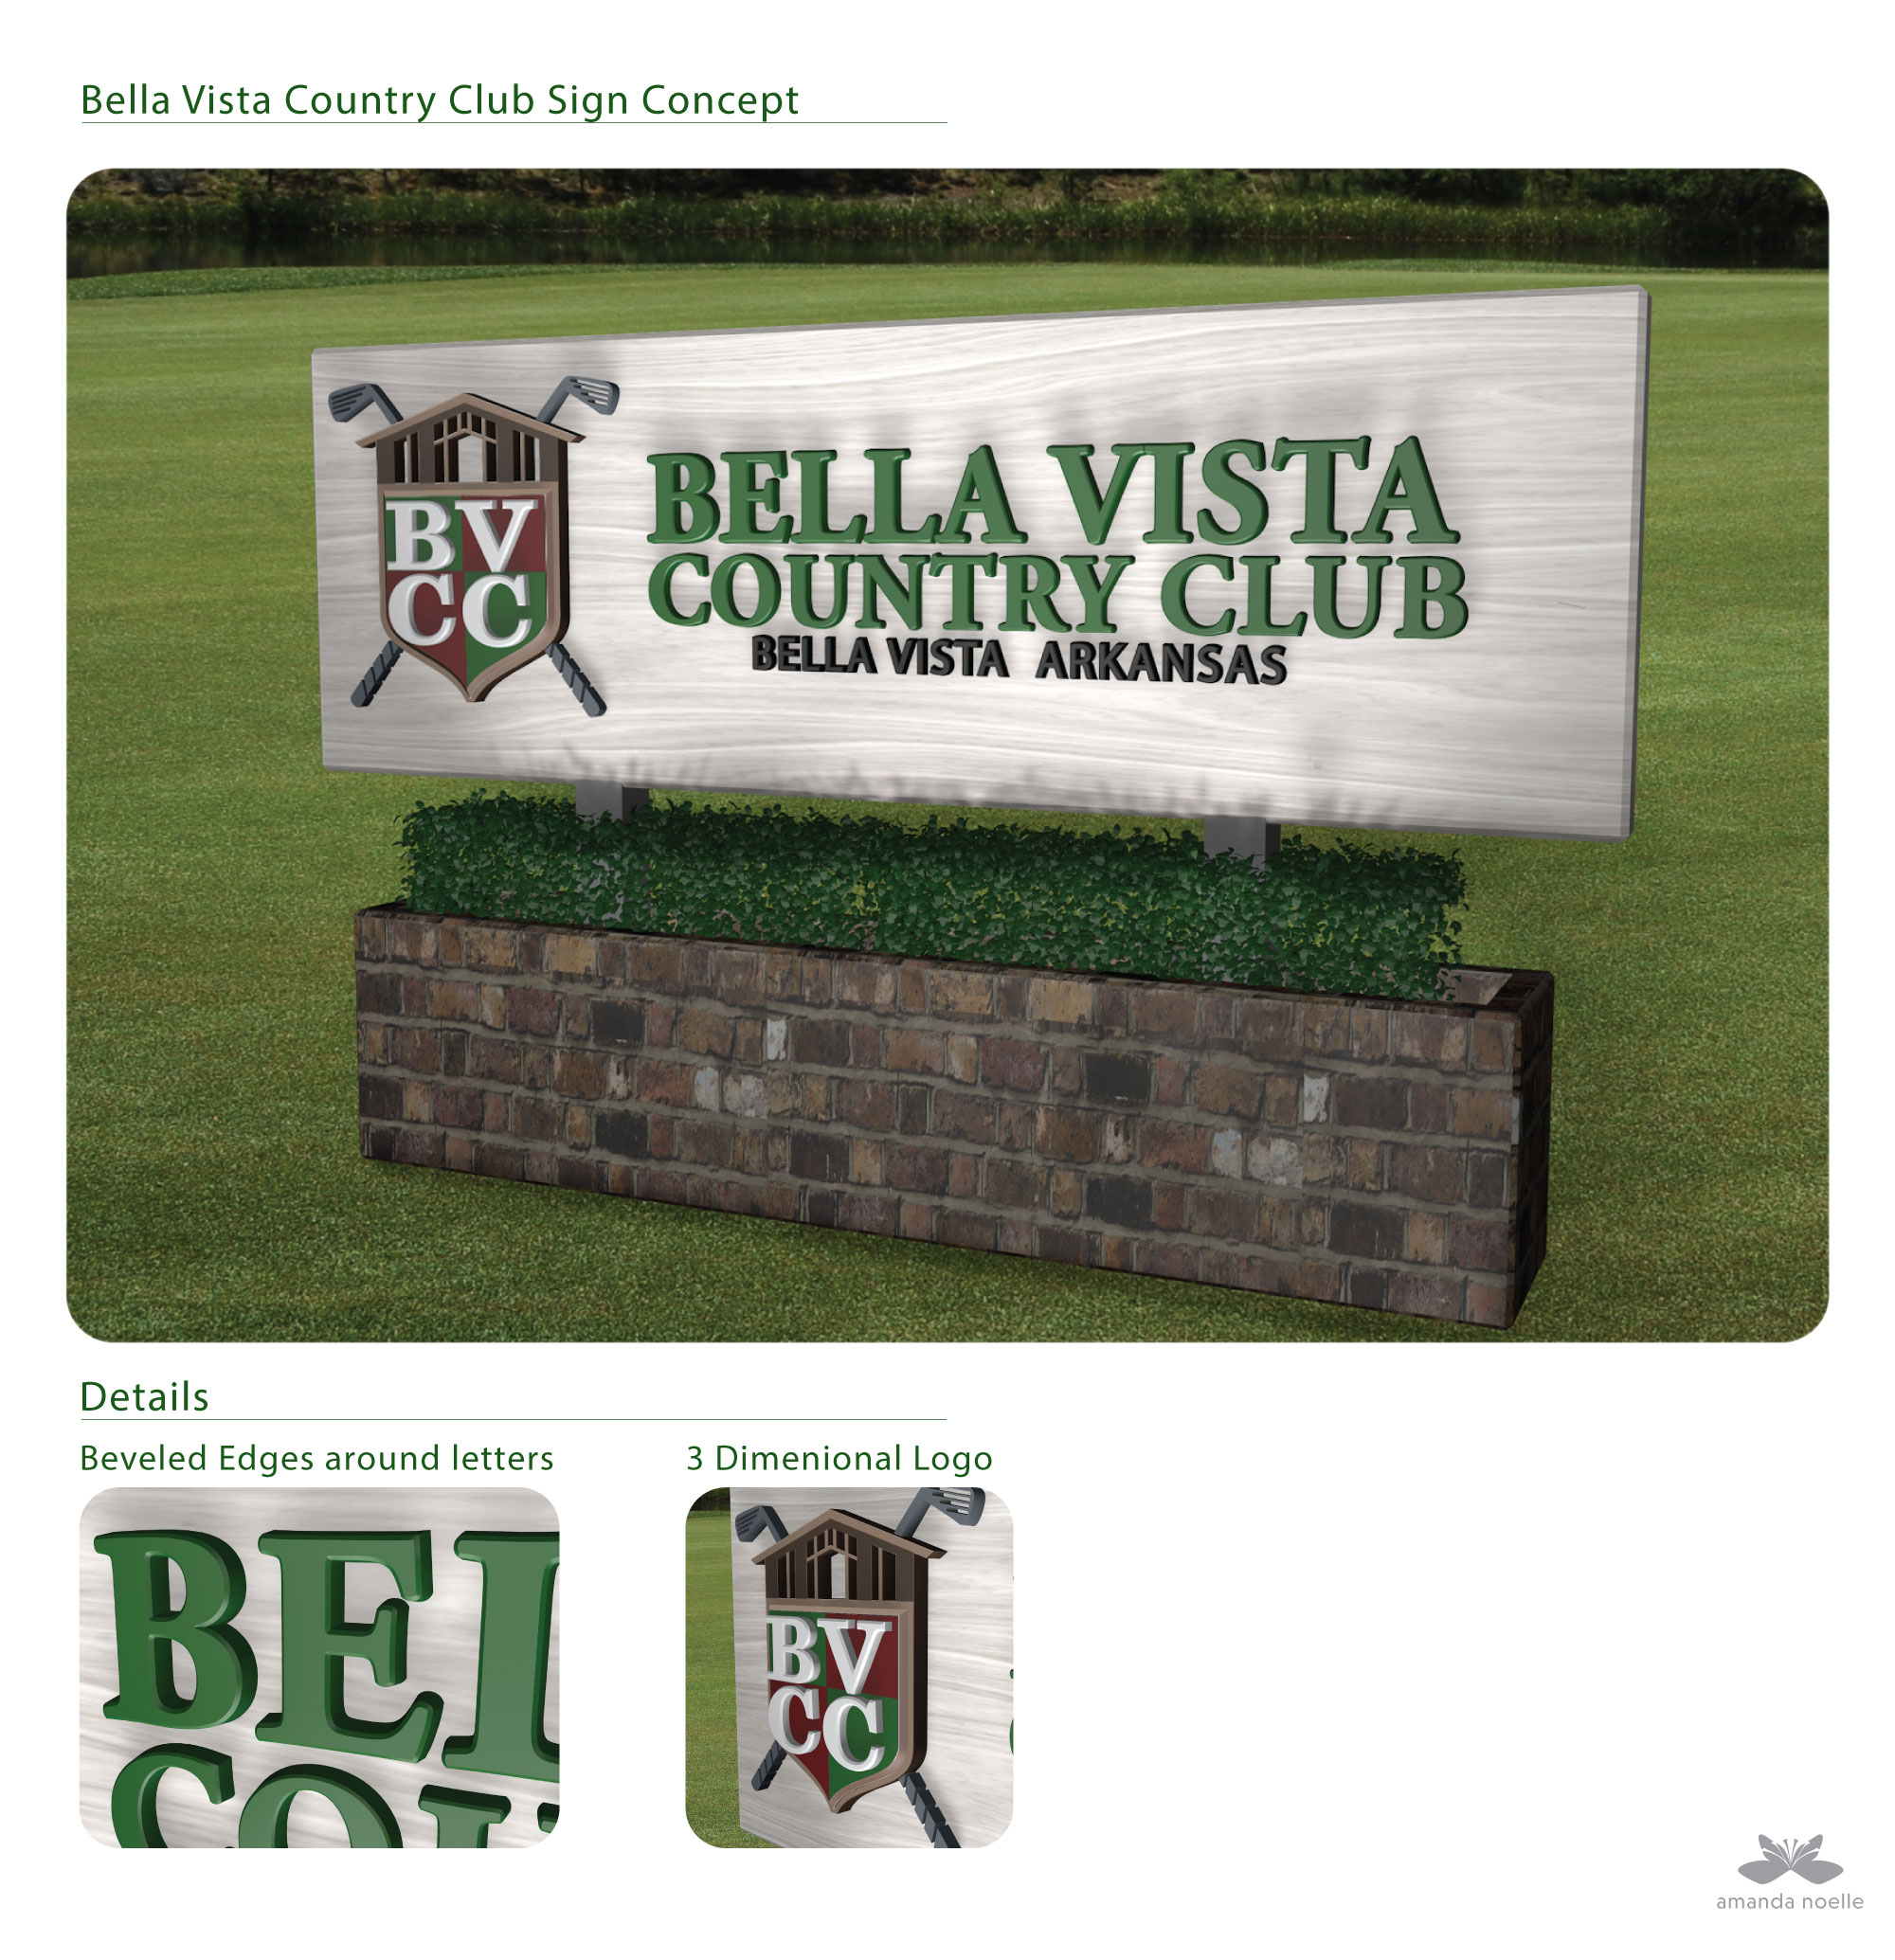 Bella Vista Country Club Sign